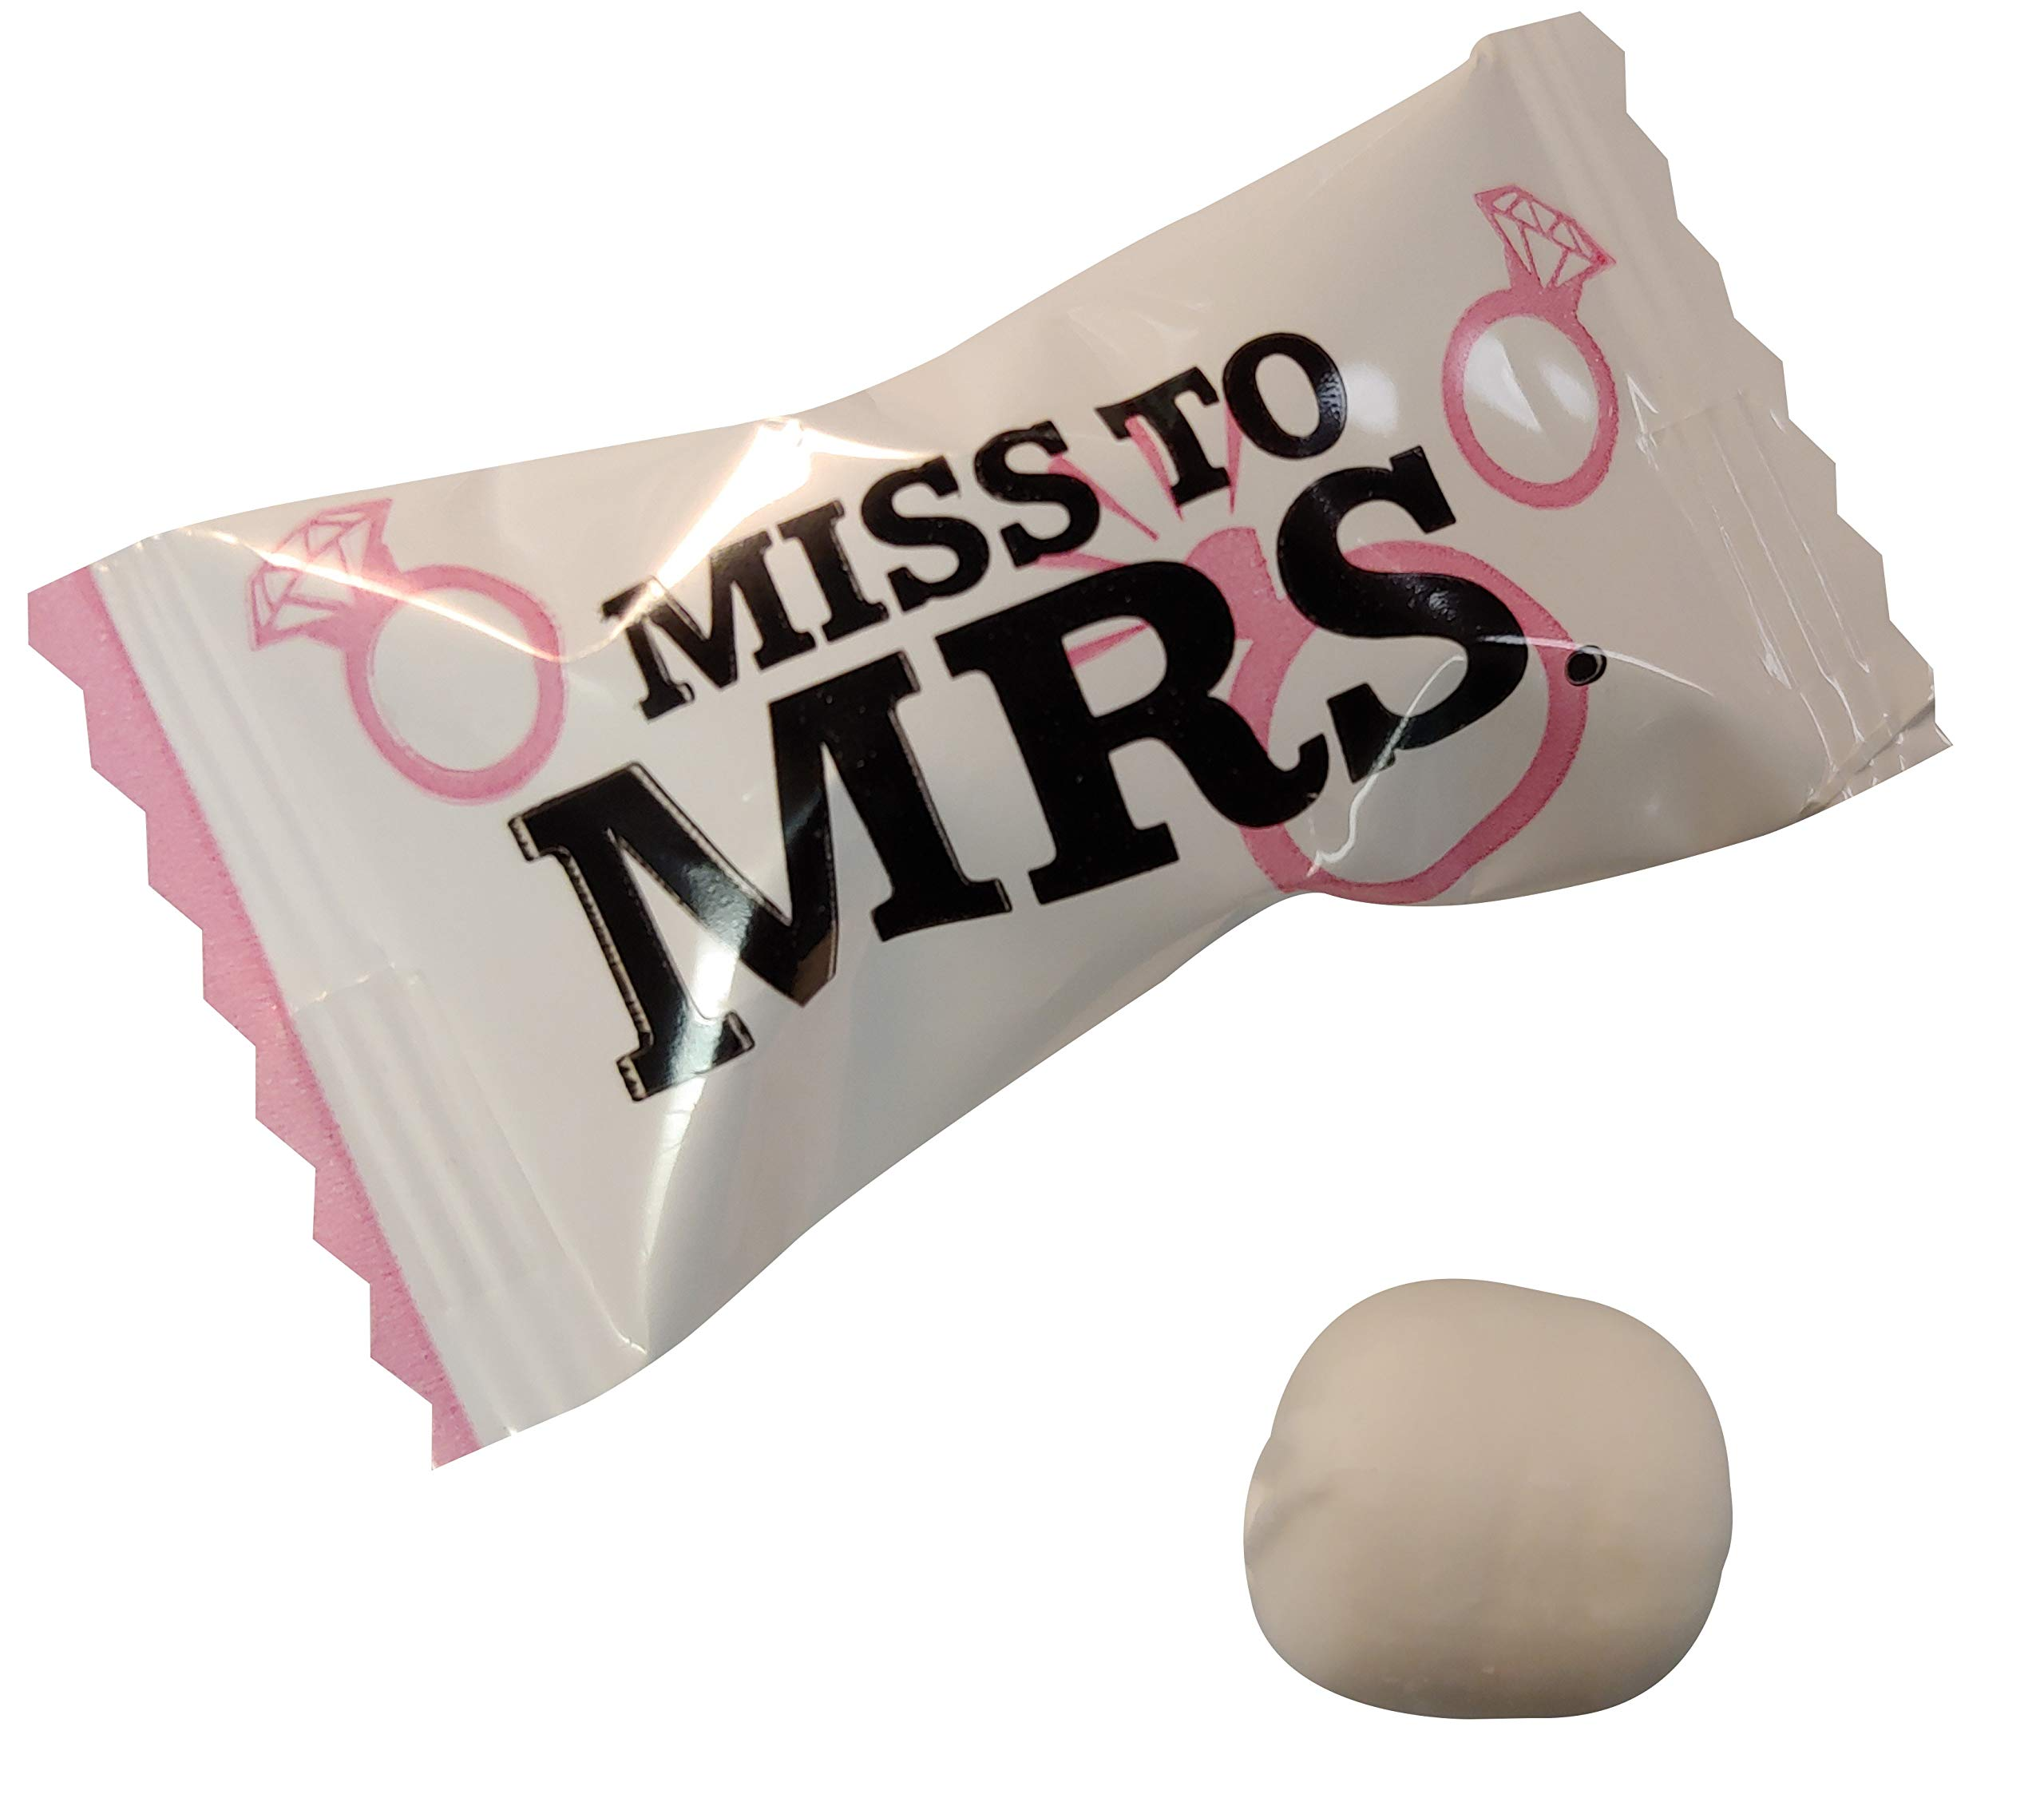 Bachelorette Party Wrapped Buttermints 100 Count Wrapped -Last Night Out - Bride To Be Candy